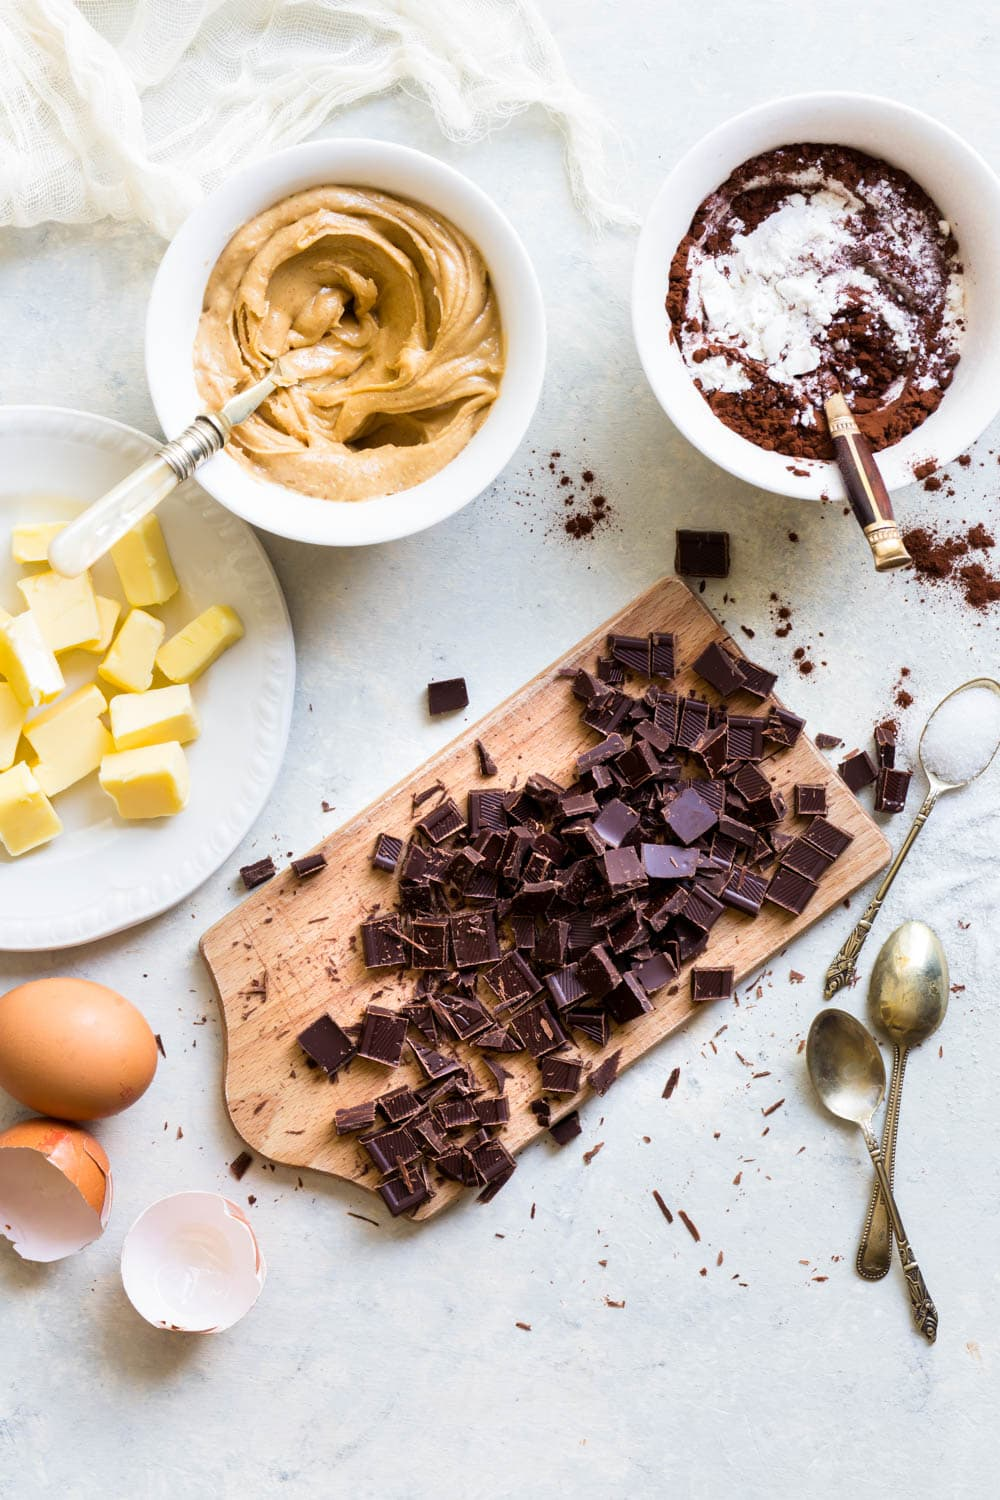 Overhead shot of the ingredients required for peanut butter stuffed brownie cookies on a light greyish blue surface.